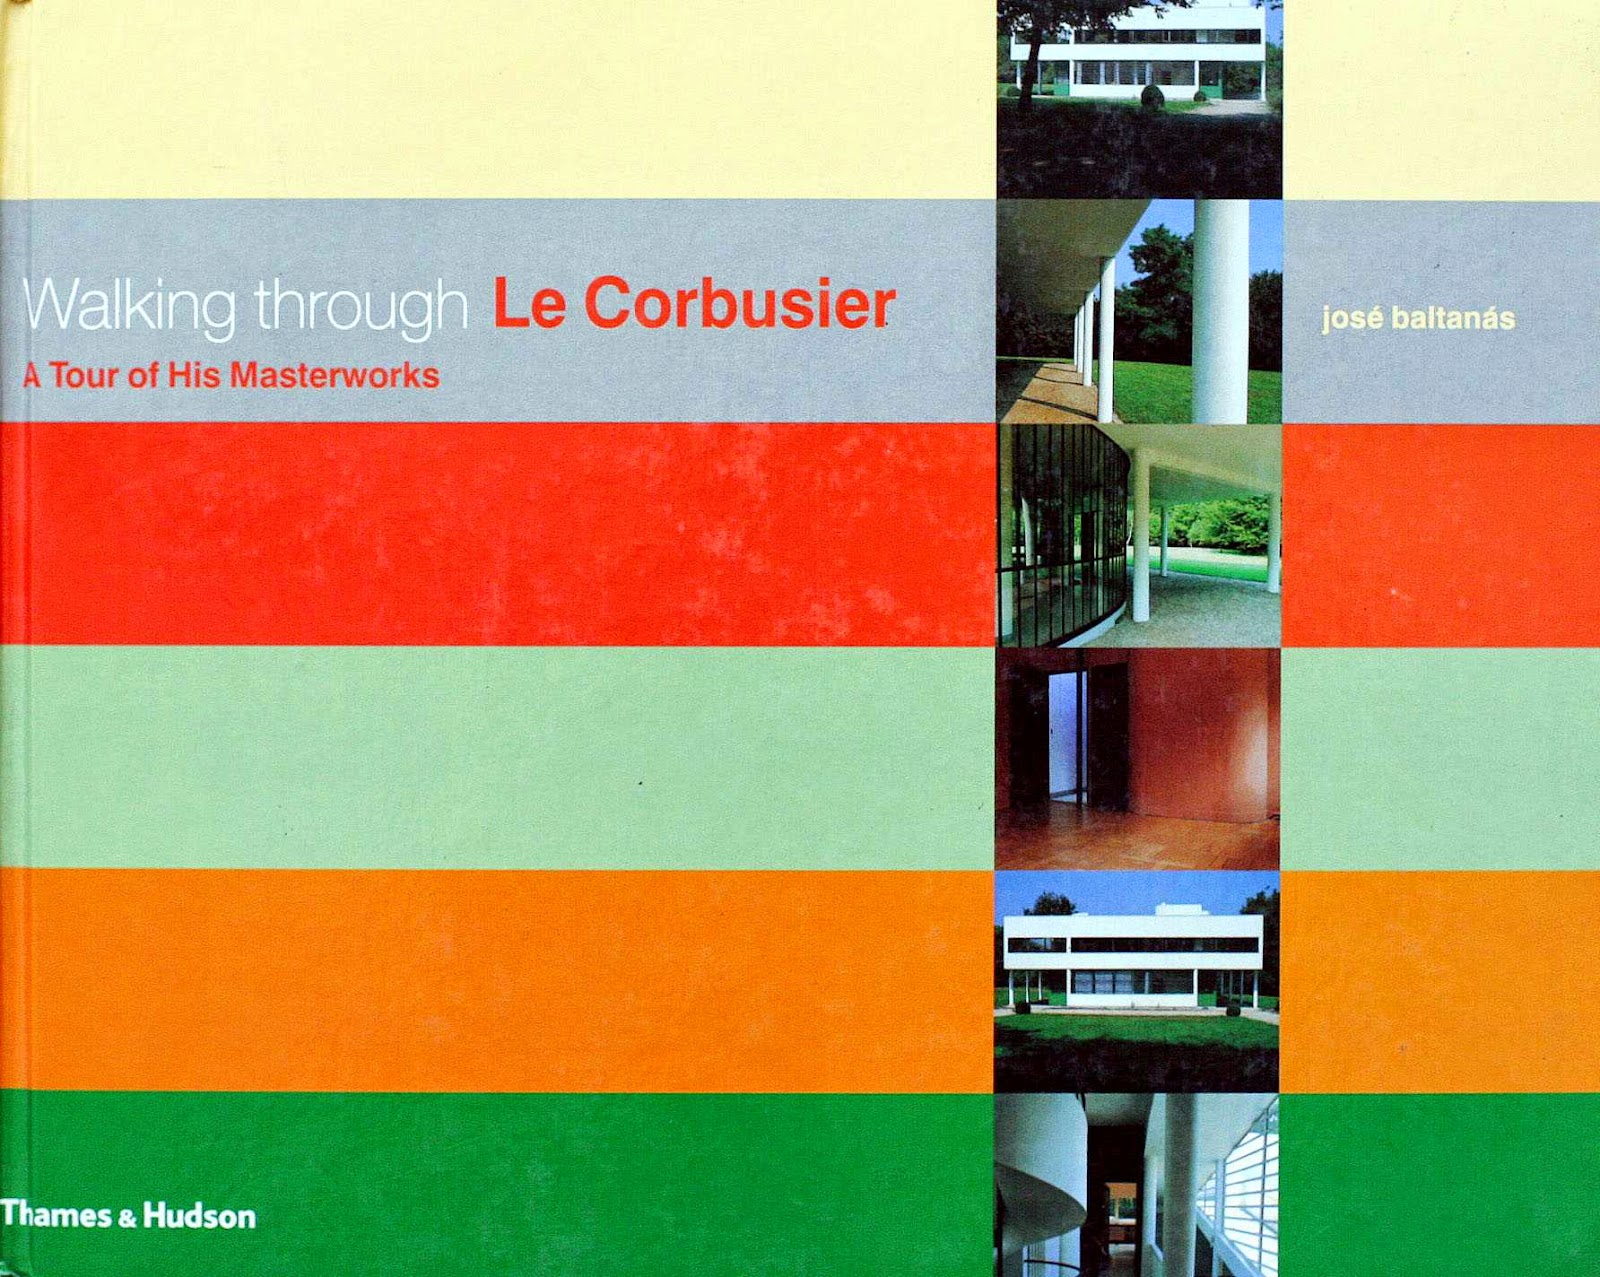 Walking through Le Corbusier